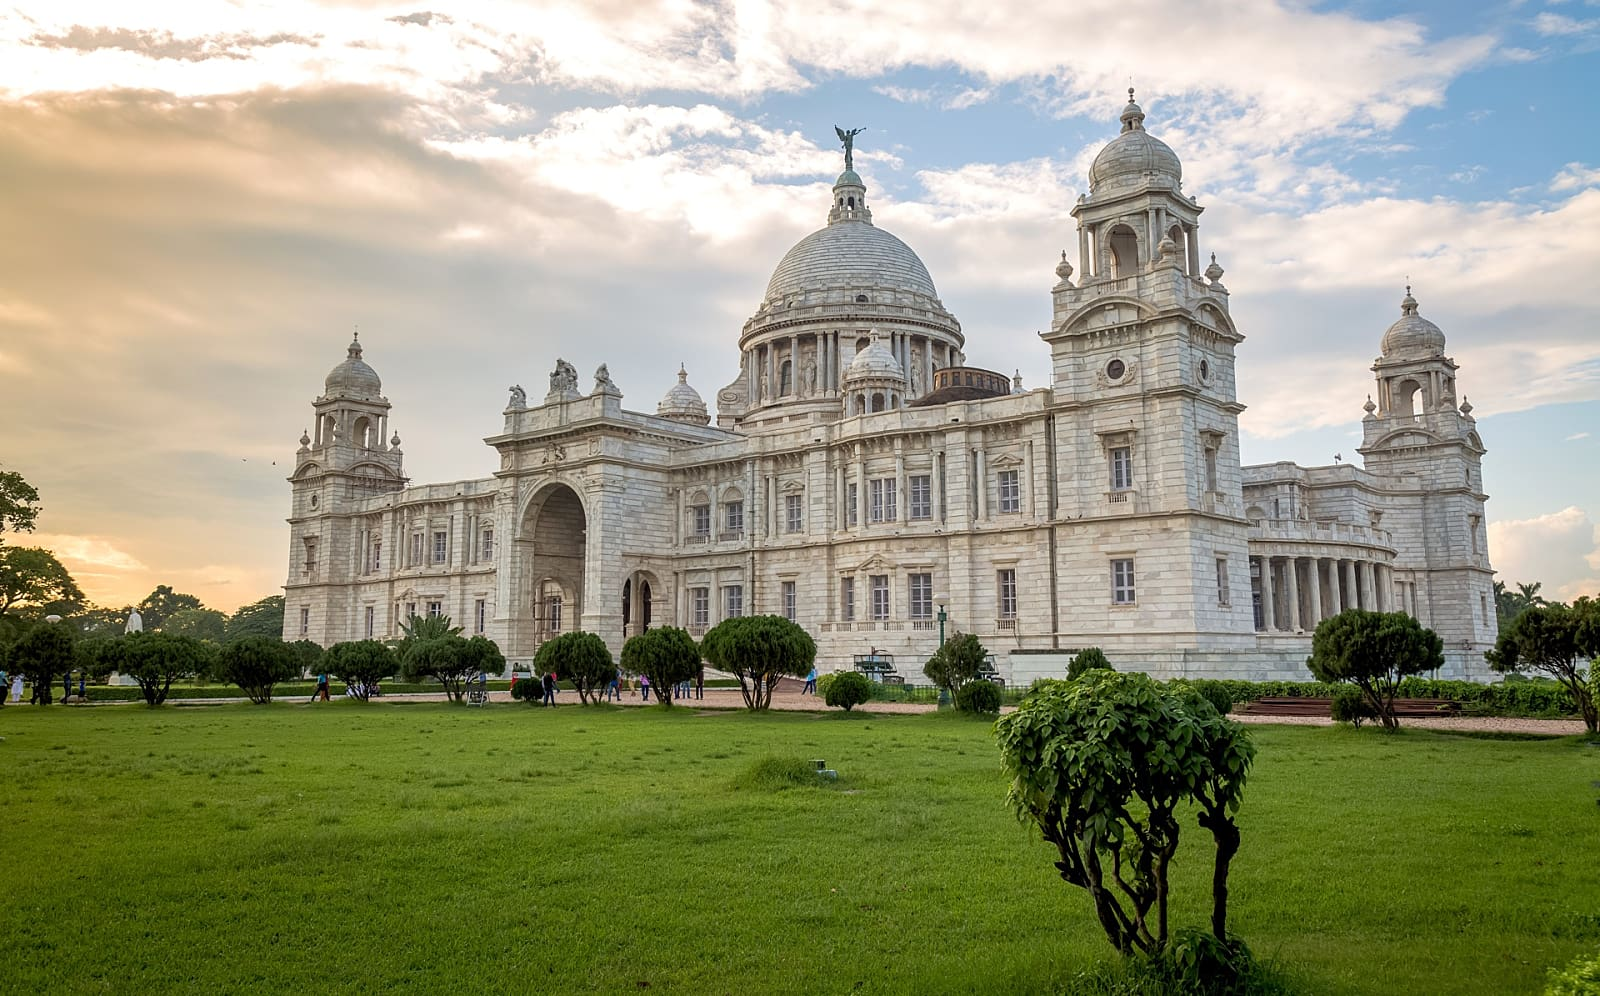 Victoria Memorial by Travelsite india